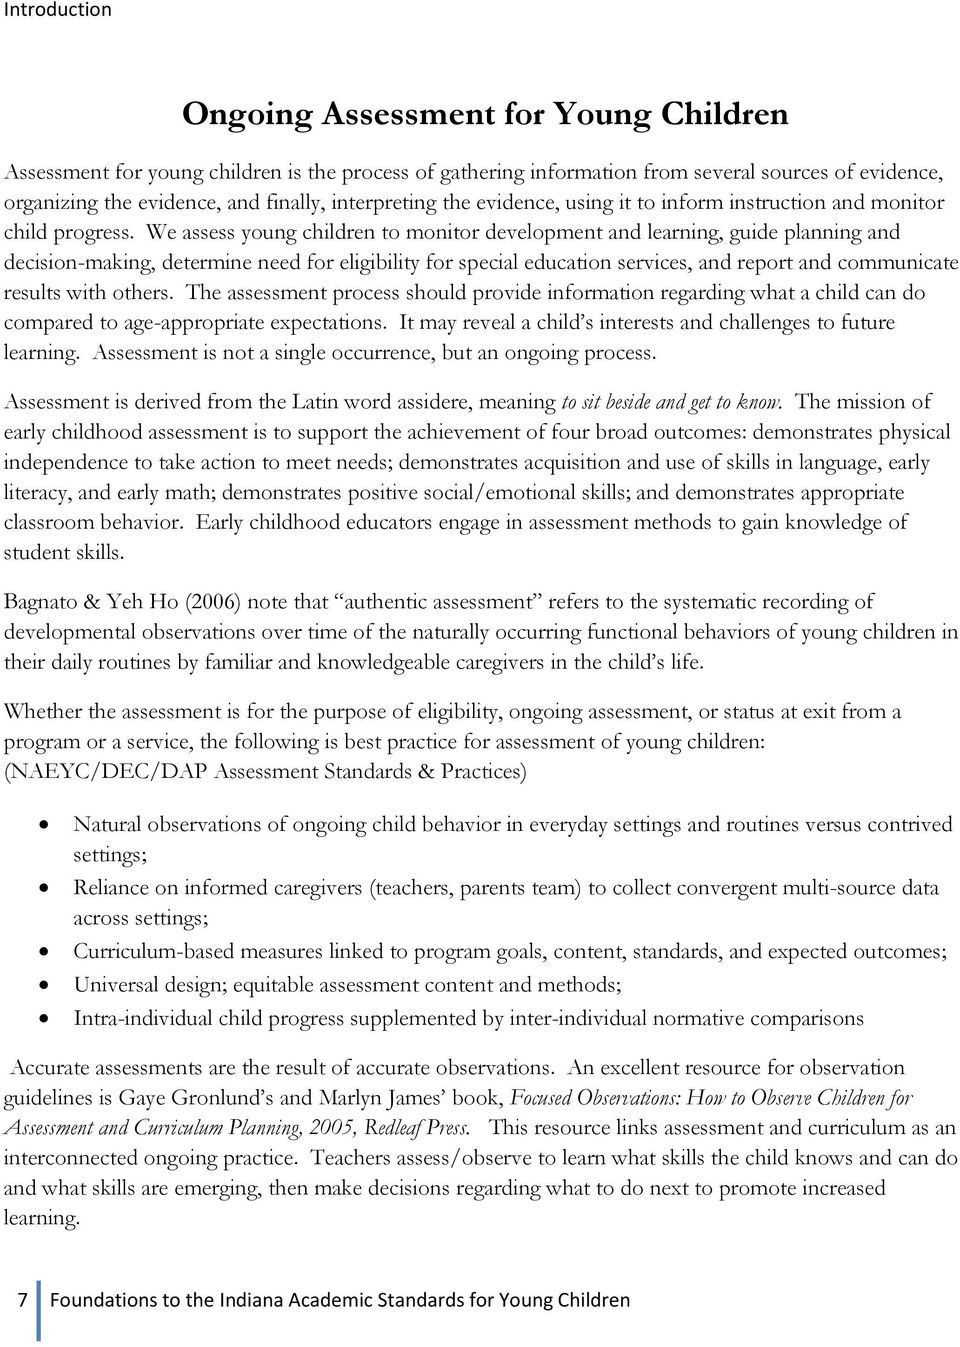 We assess young children to monitor development and learning, guide planning and decision-making, determine need for eligibility for special education services, and report and communicate results